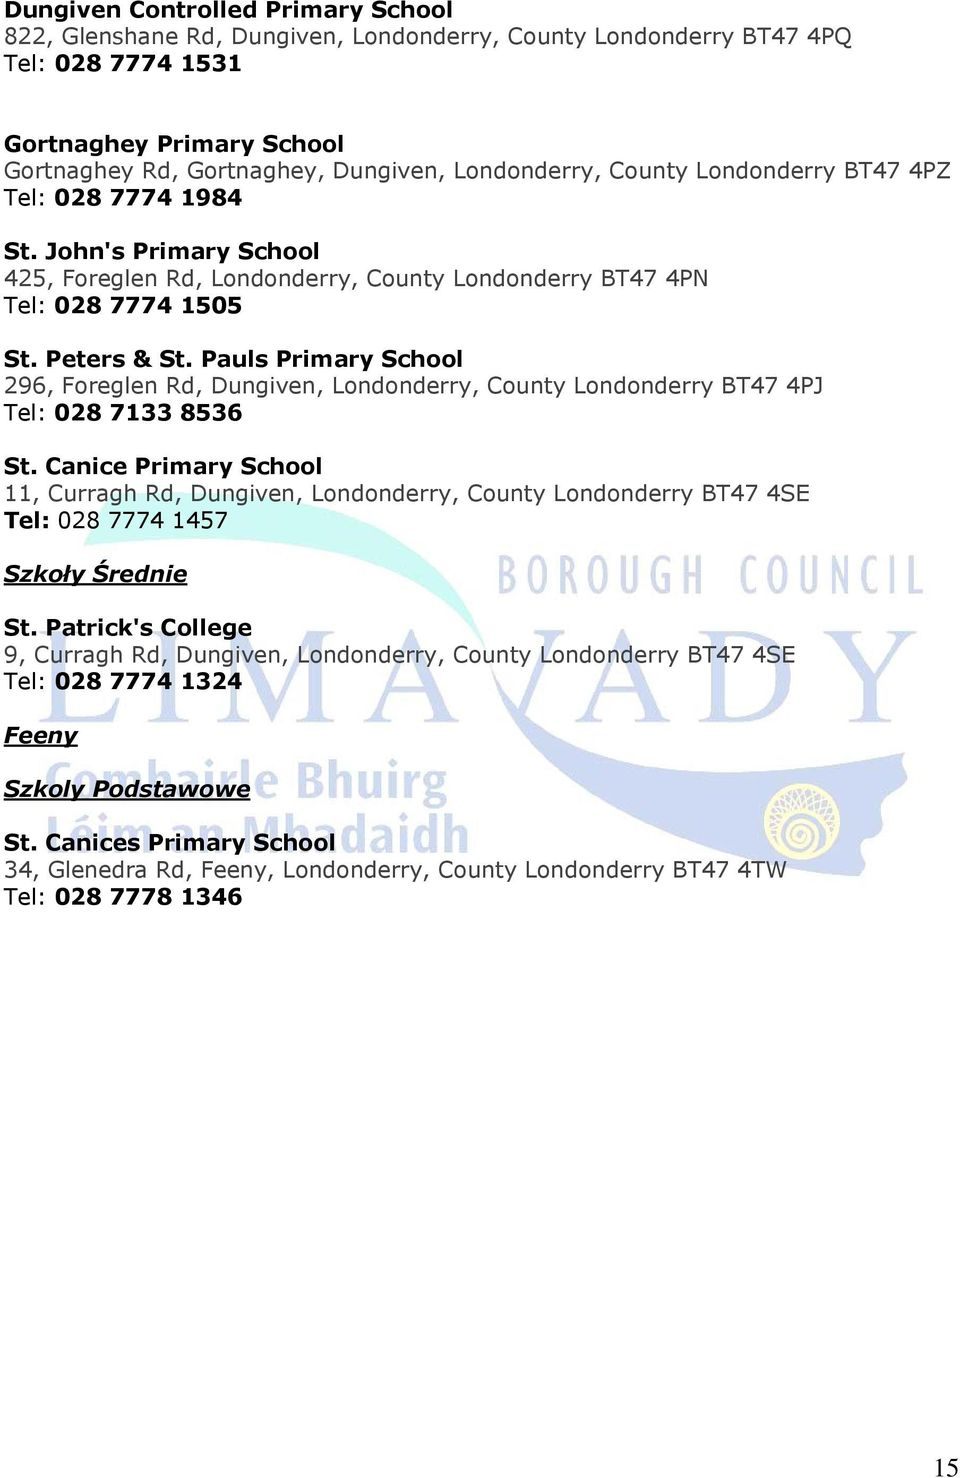 Pauls Primary School 296, Foreglen Rd, Dungiven, Londonderry, County Londonderry BT47 4PJ Tel: 028 7133 8536 St.